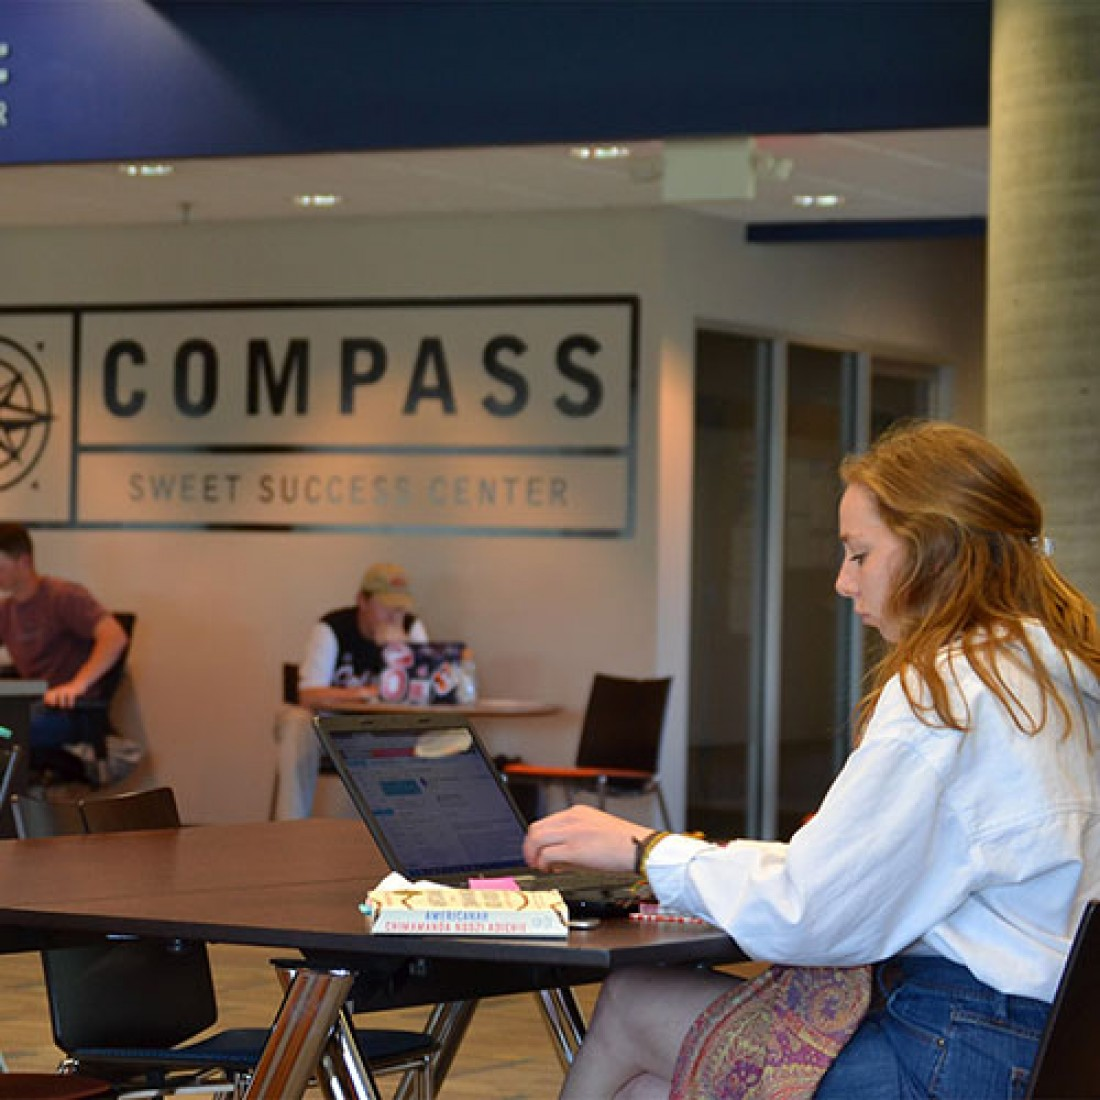 Students in COMPASS